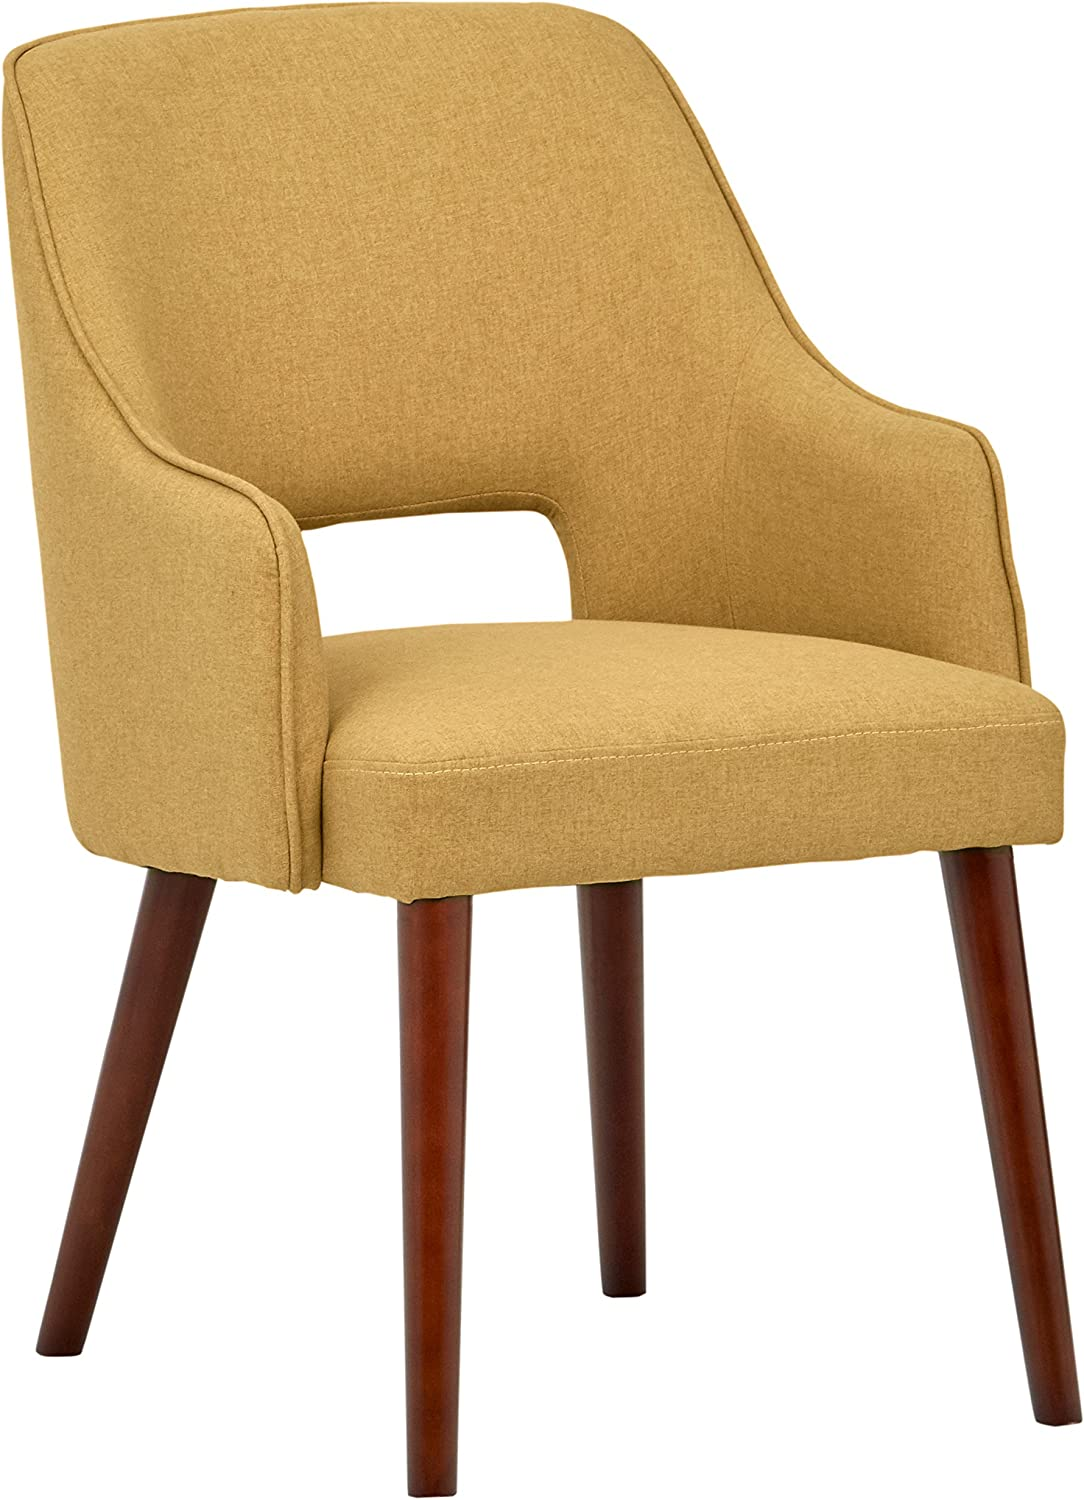 """Rivet Whidbey Mid-Century Open Back Accent Dining Chair, 22.8""""W, Canary"""